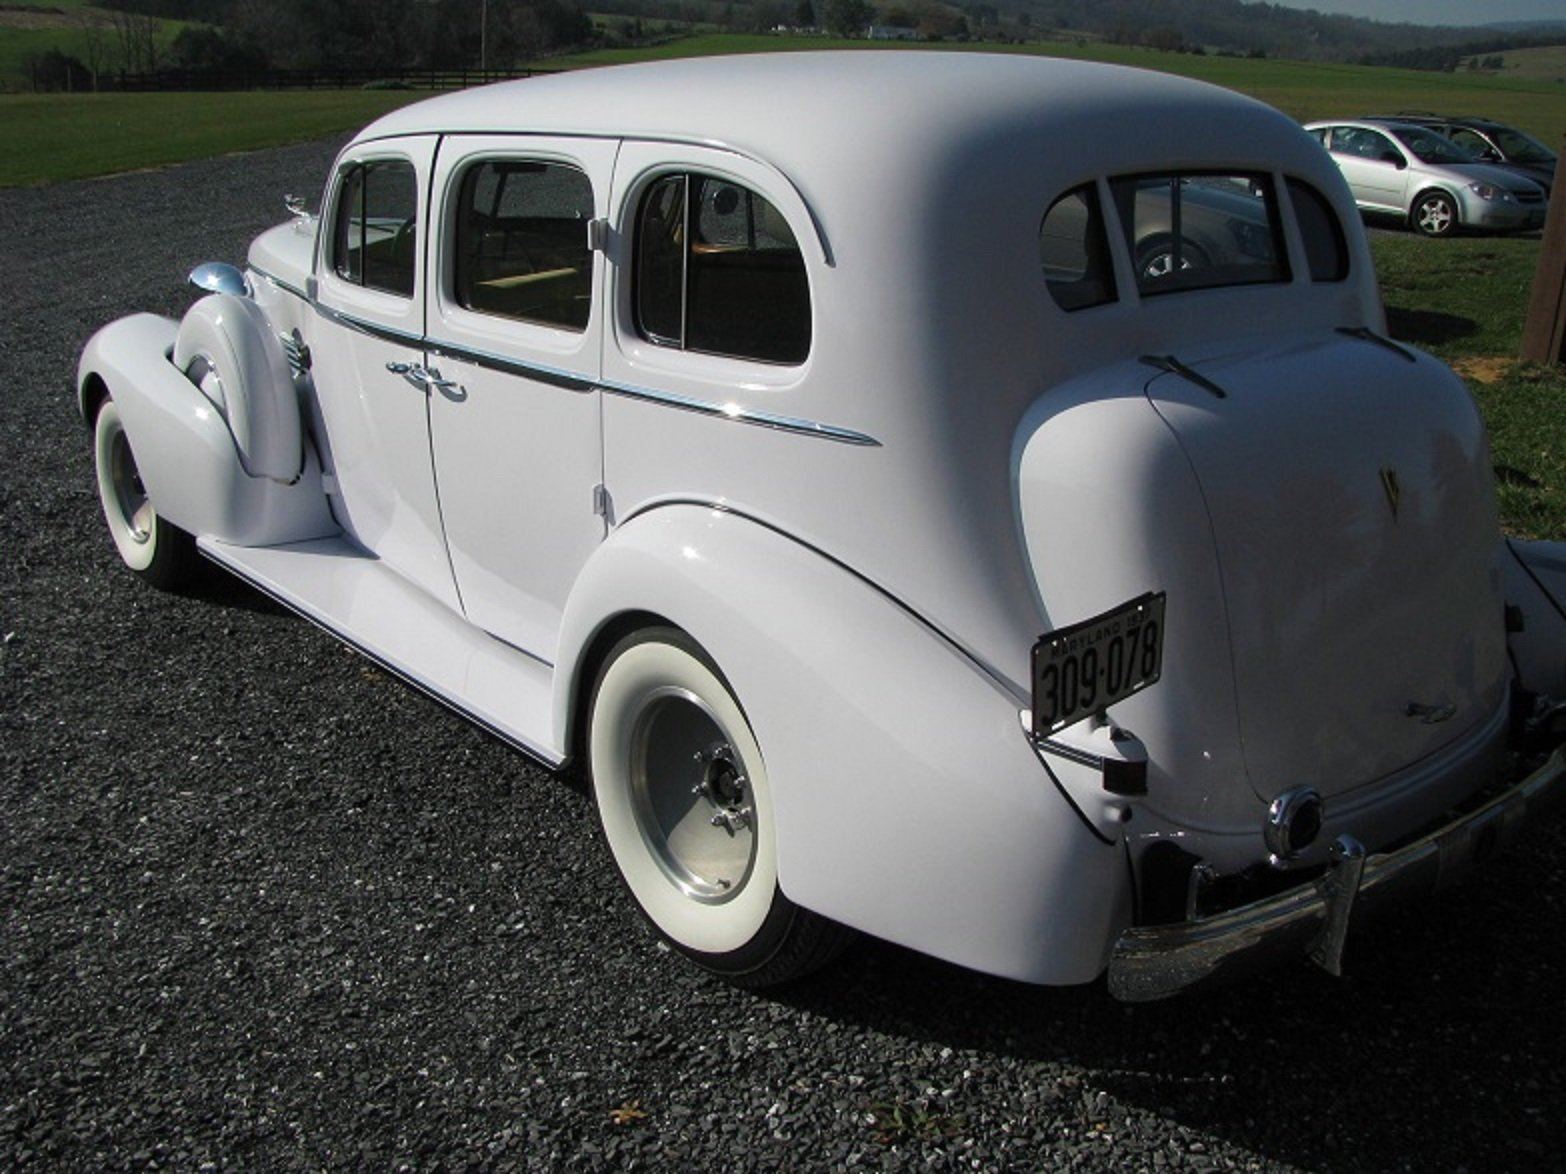 1937 Cadillac 85 Touring Sedan For Sale (picture 4 of 6)